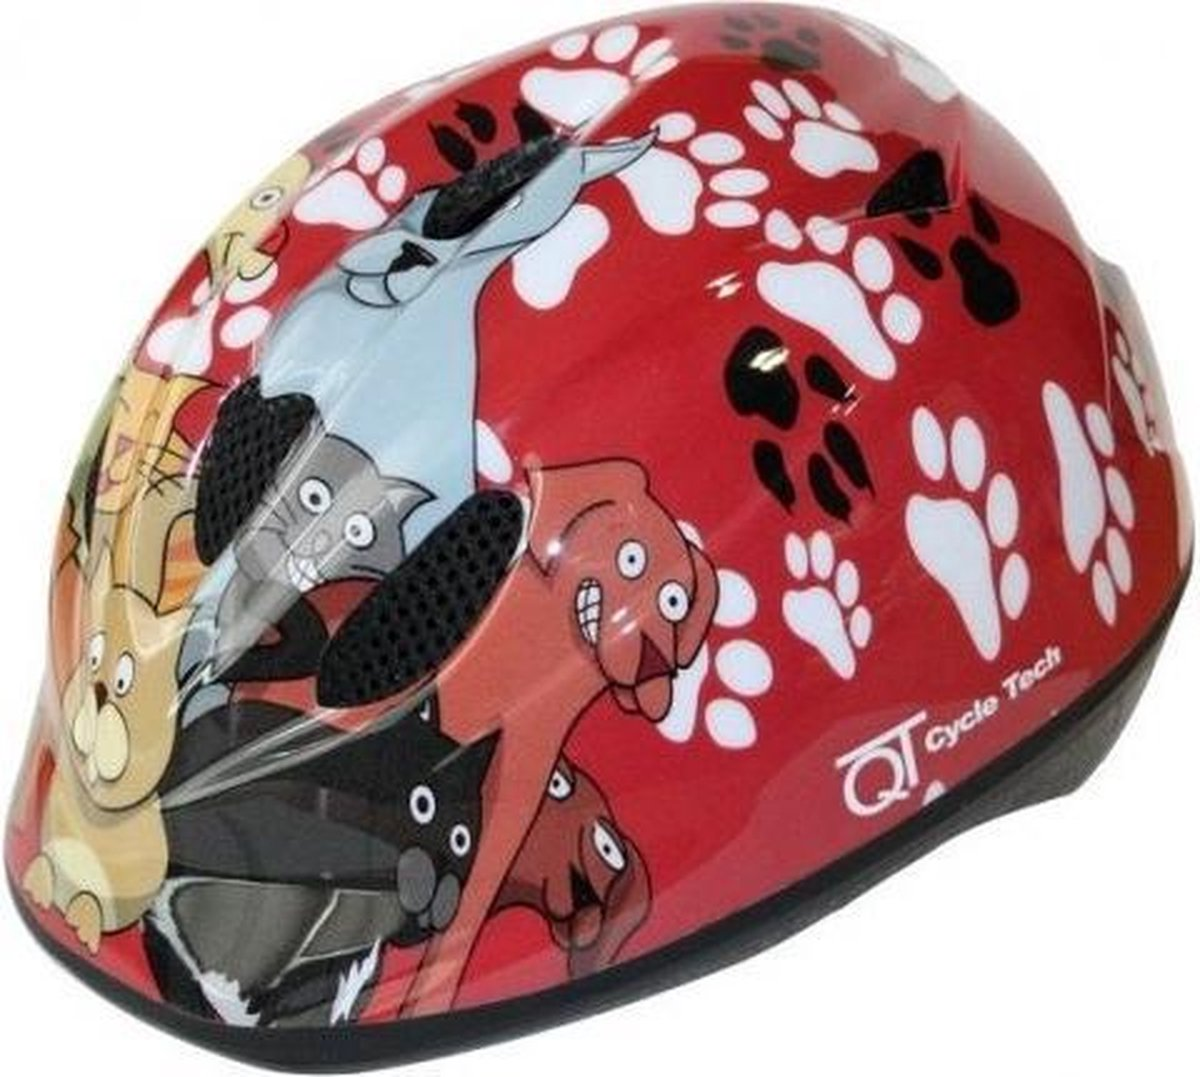 Cycle Tech helm Cats/Dogs rood maat 46/52 cm